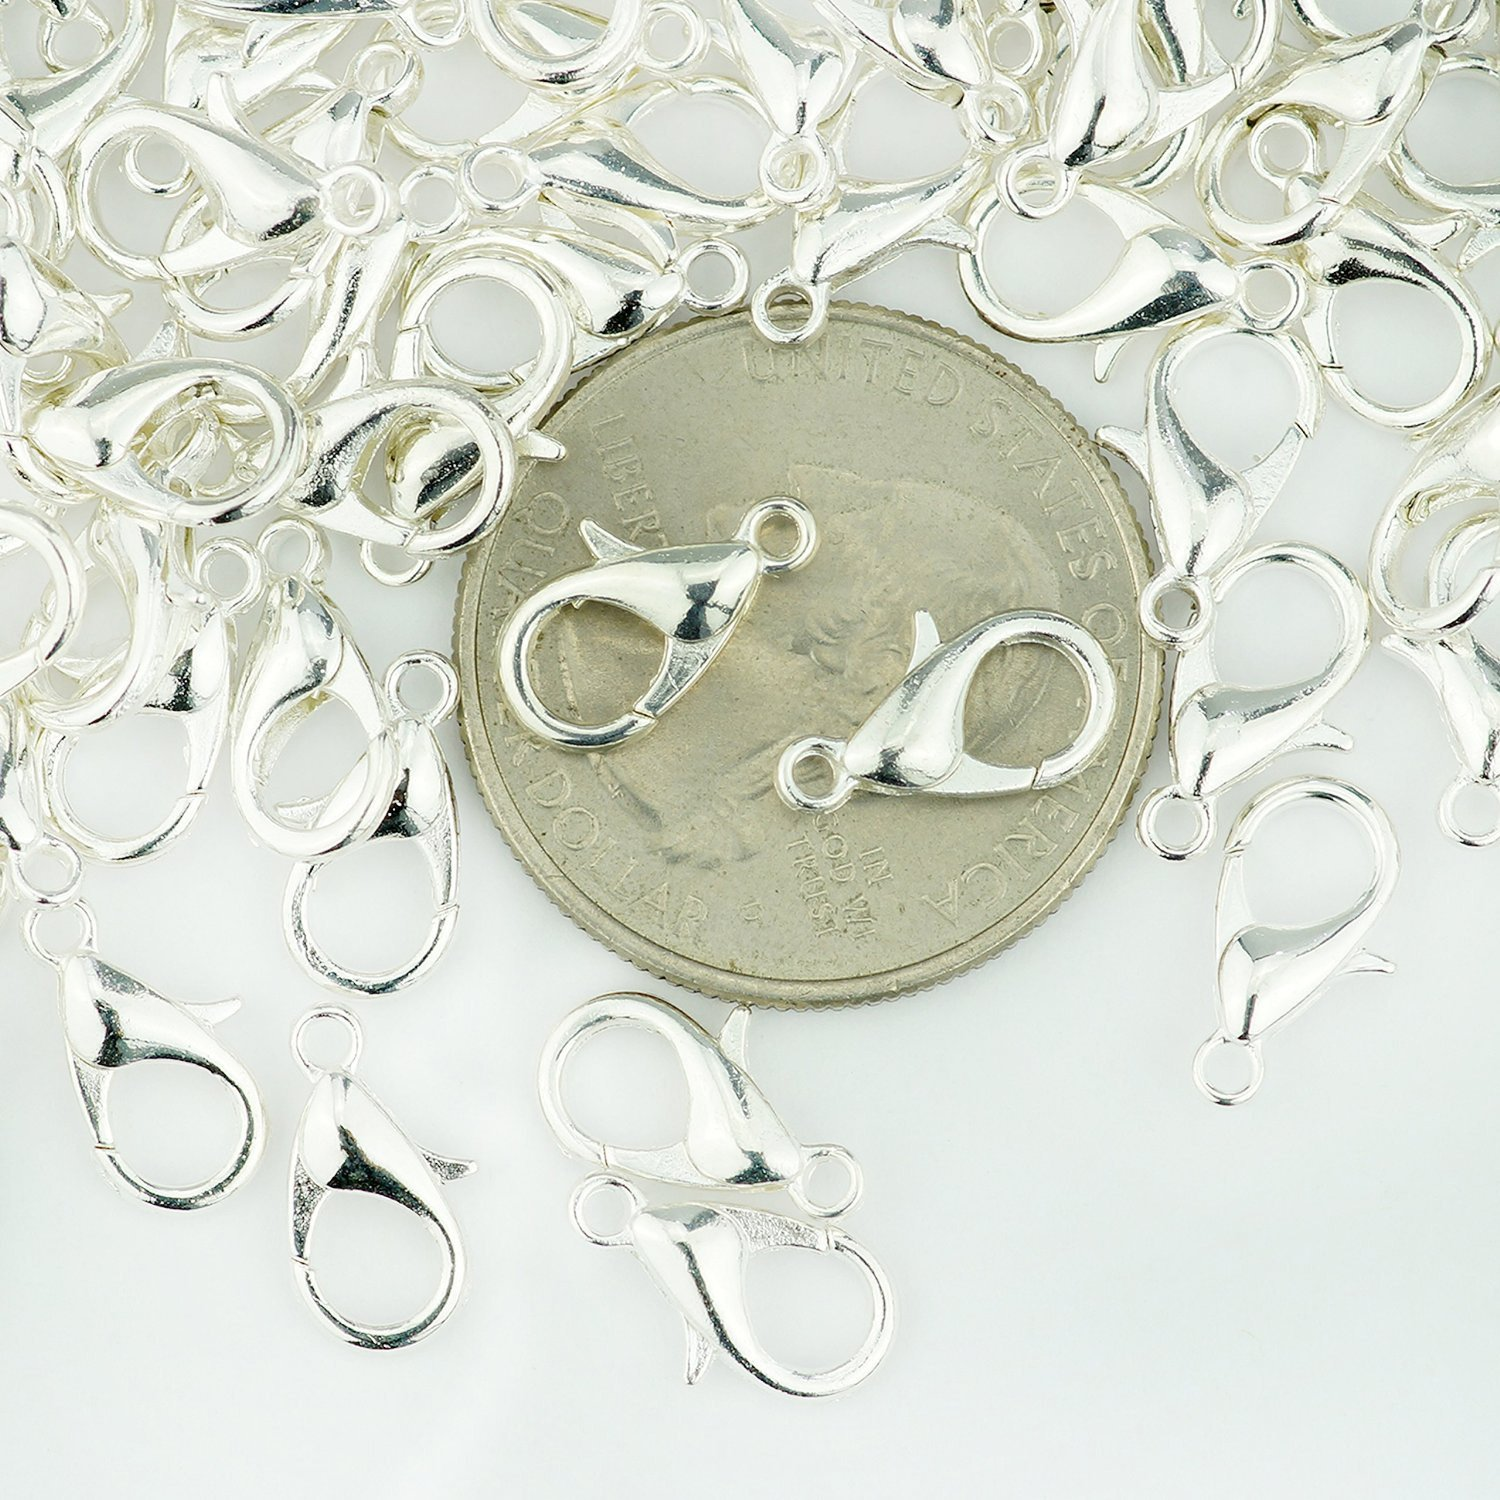 Yueton Curved Lobster Clasps-100pcs 7x12mm Silver Plated Lobster Claw Clasps DIY Jewelry Fastener Hook,necklace DIY Fasteners Silver